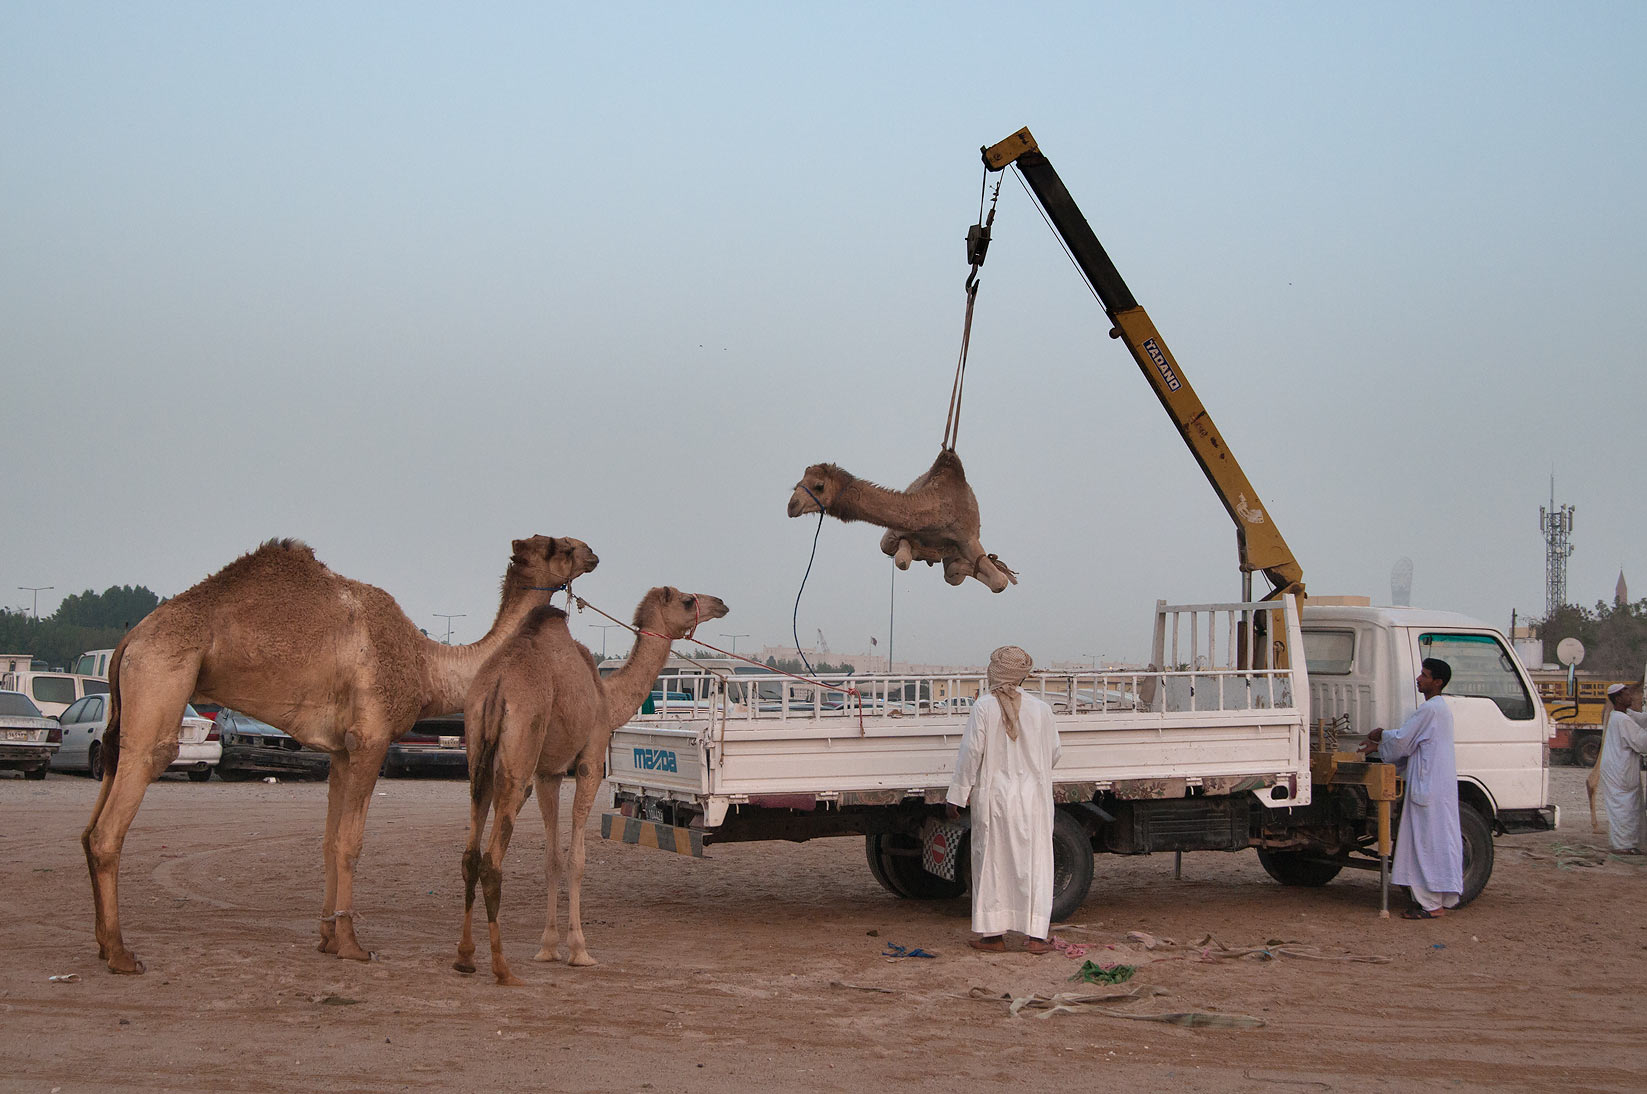 Unloading camels from a truck by a crane in Camel...in Wholesale Markets area. Doha, Qatar